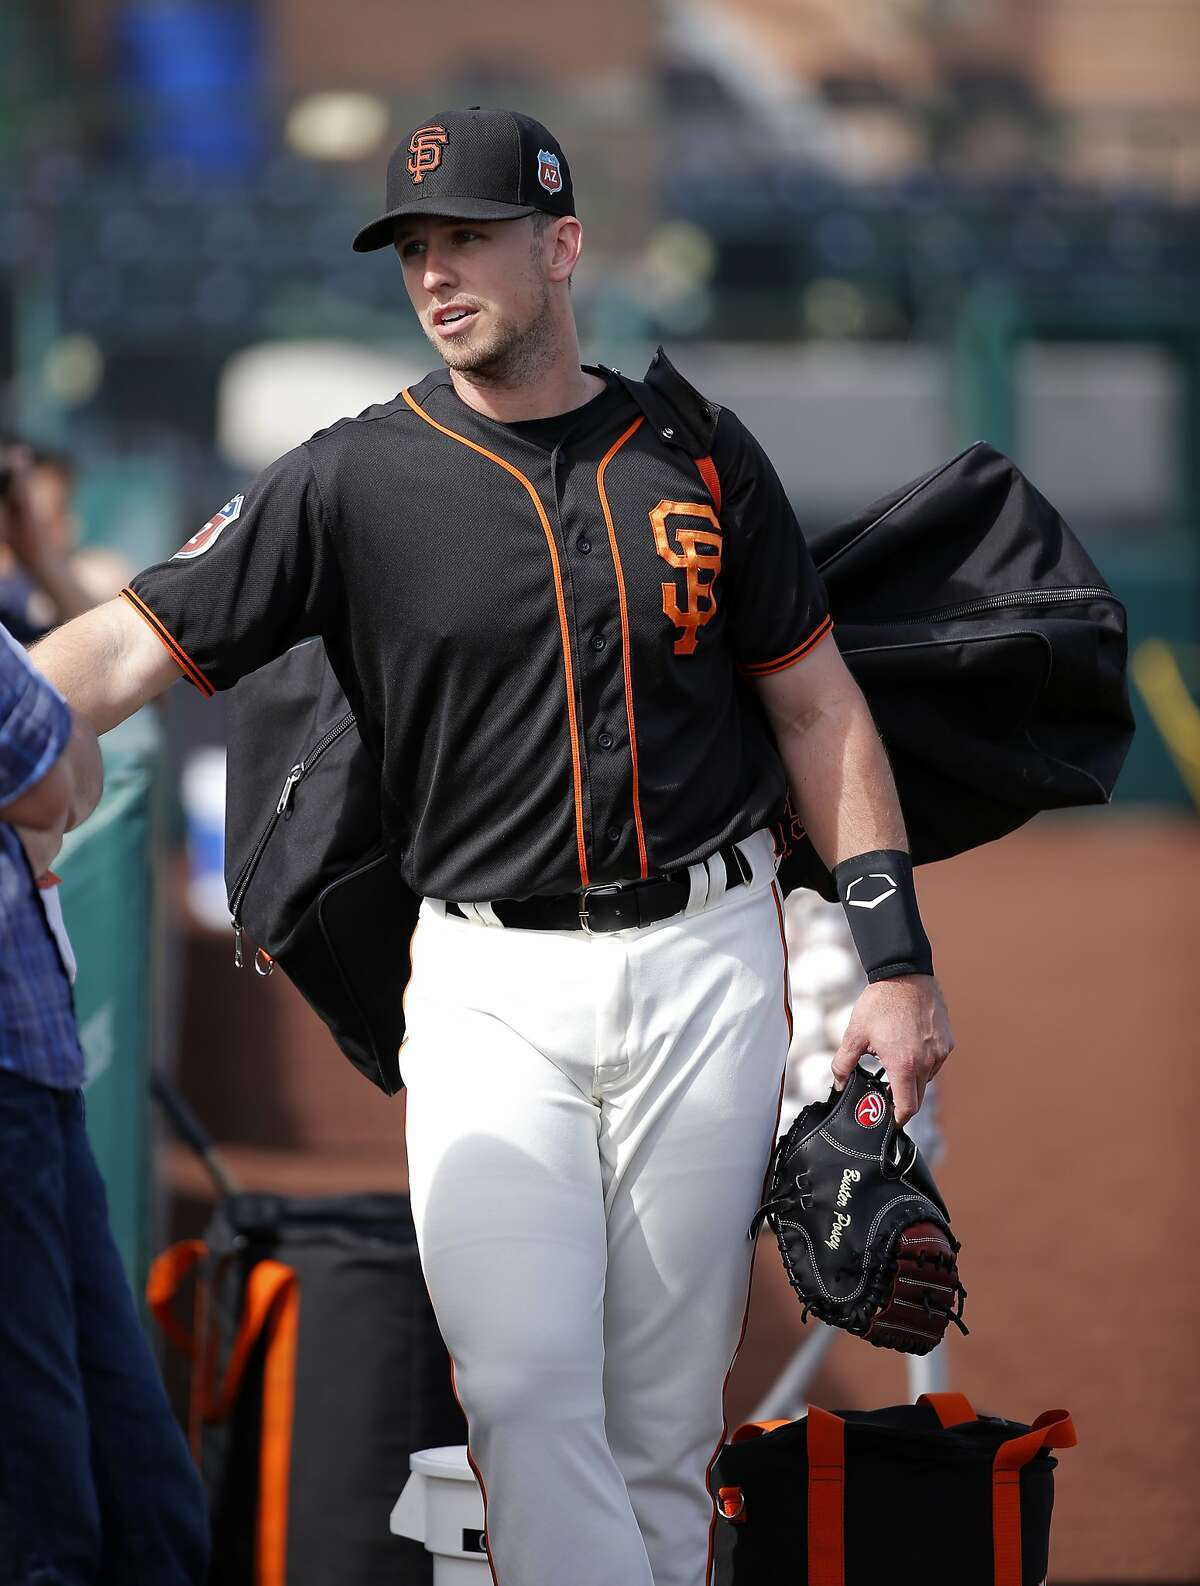 Catcher Buster Posey, 28 during morning workouts as the San Francisco Giants prepare to play the Los Angeles Angels at Scottsdale Stadium on Wed. March 2, 2016, in Scottsdale, Arizona.